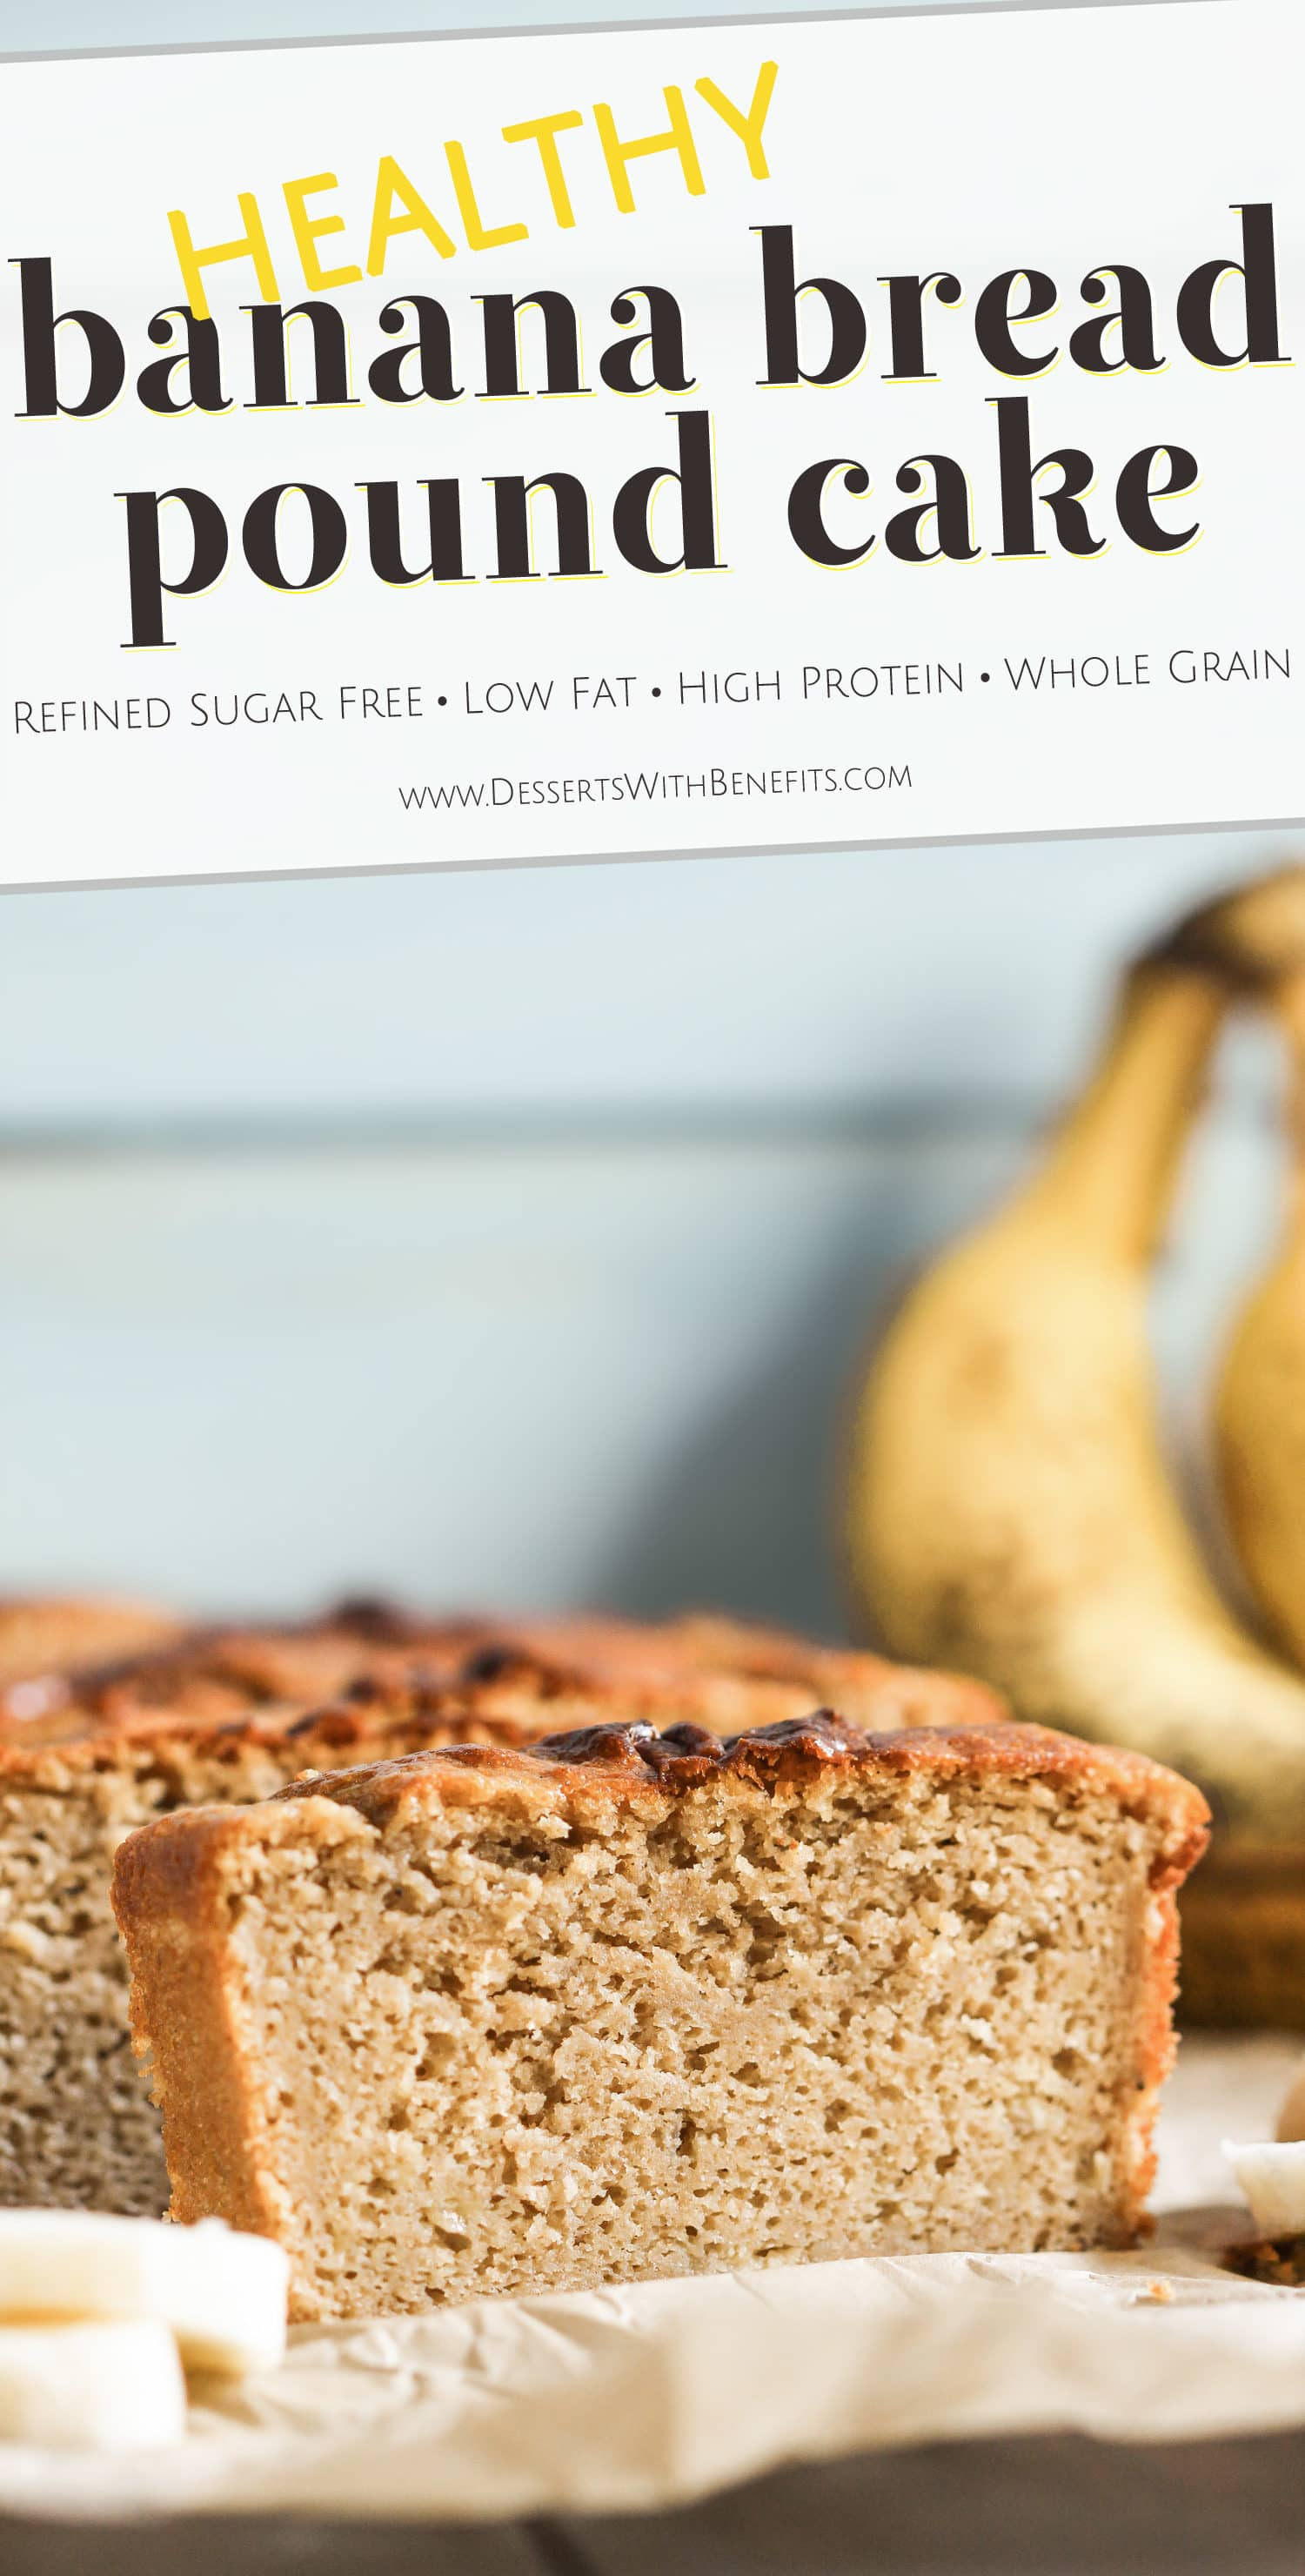 HEALTHY Banana Bread Pound Cake! This moist, buttery, and sweet cake is refined sugar free, low fat, high protein, and 100% whole grain! It tastes like it's from a bakery. A thick slice has just 190 calories and 5g of fat, plus 8g of protein and 3g of fiber, with no butter or white sugar in sight! Healthy Dessert Recipes with low calorie, low carb, gluten free, dairy free, and vegan options at the Desserts With Benefits Blog (www.DessertsWithBenefits.com)